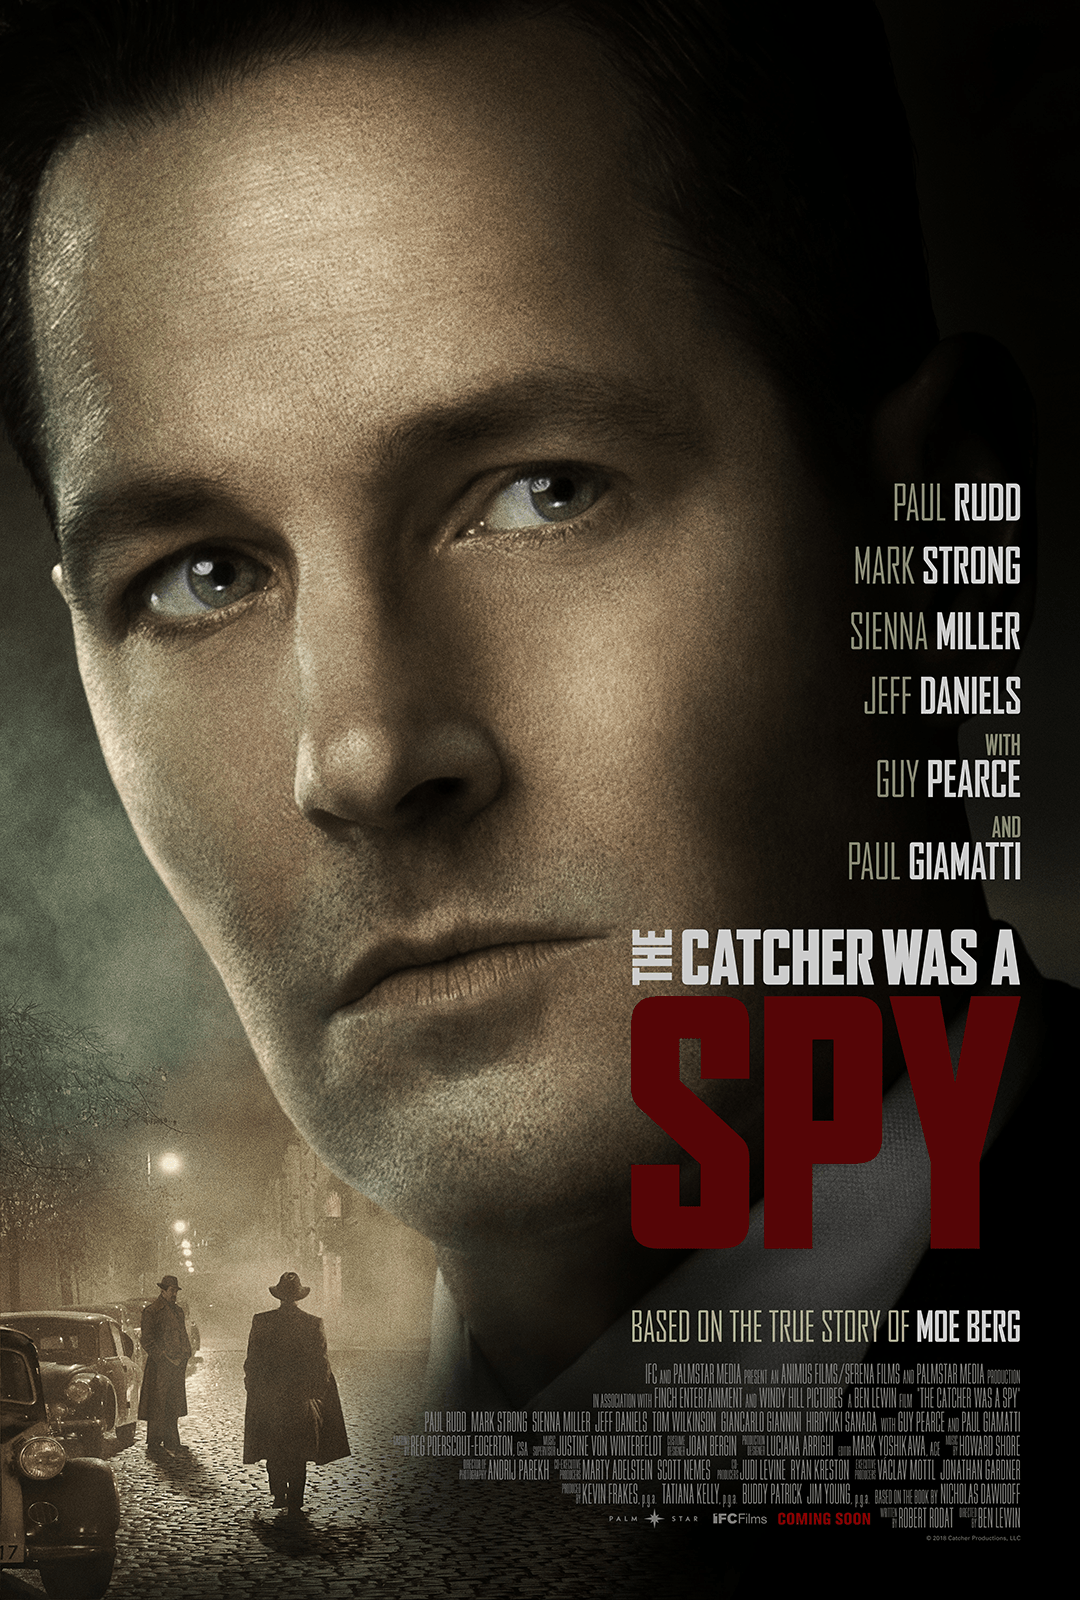 The Catcher Was A Spy (Official Movie Poster)